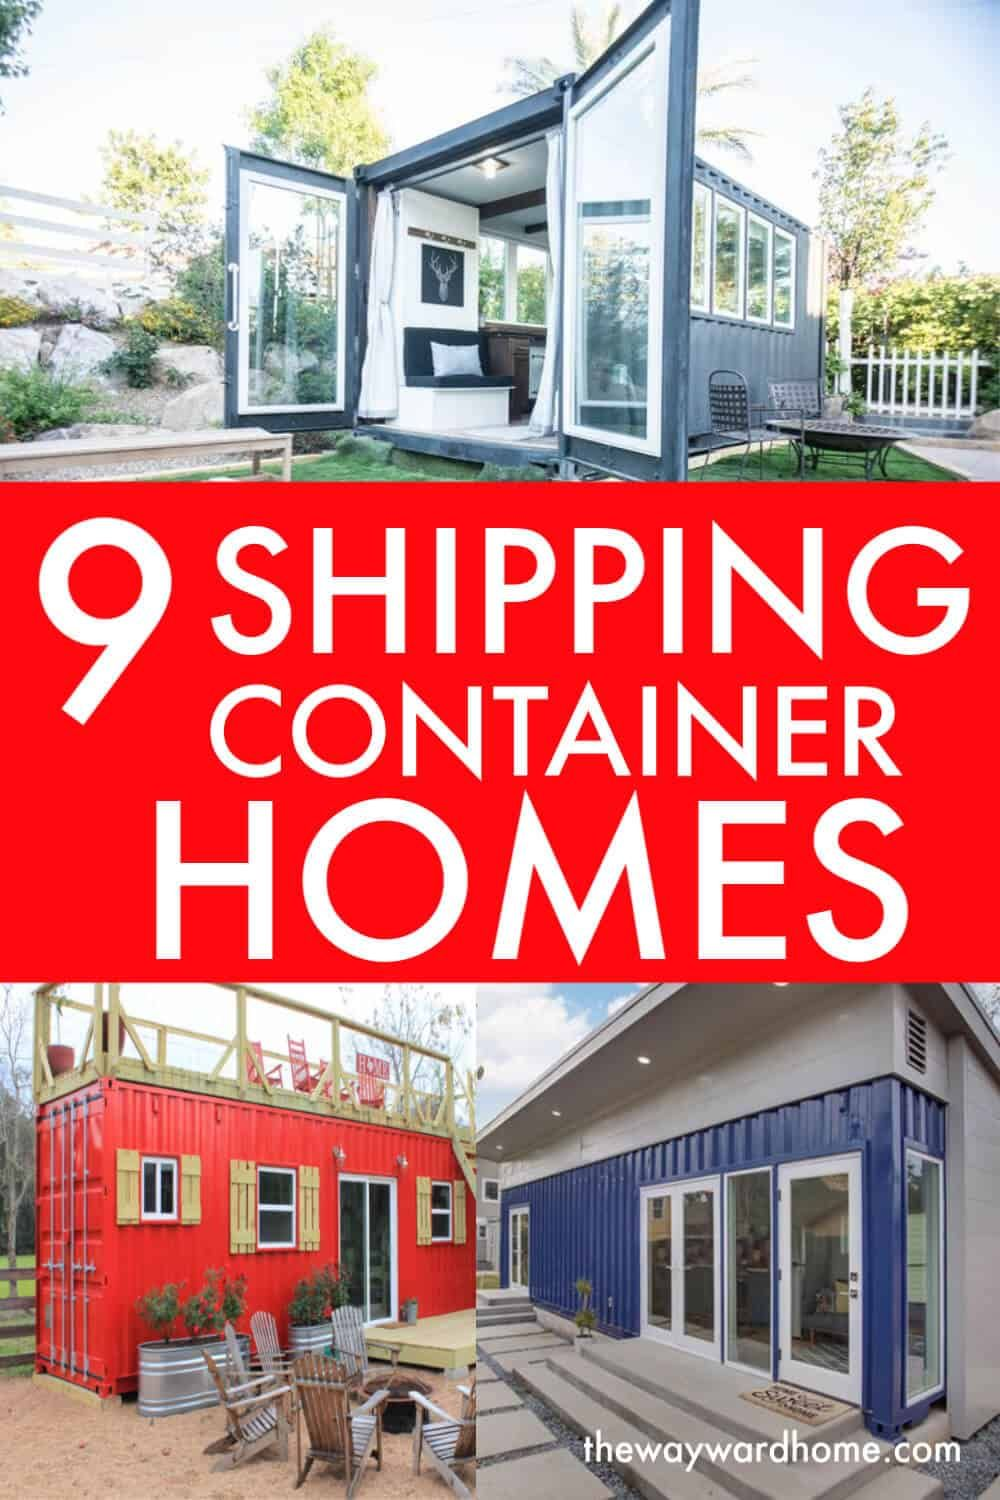 Shipping Container Homes 9 You Can Buy Right Now